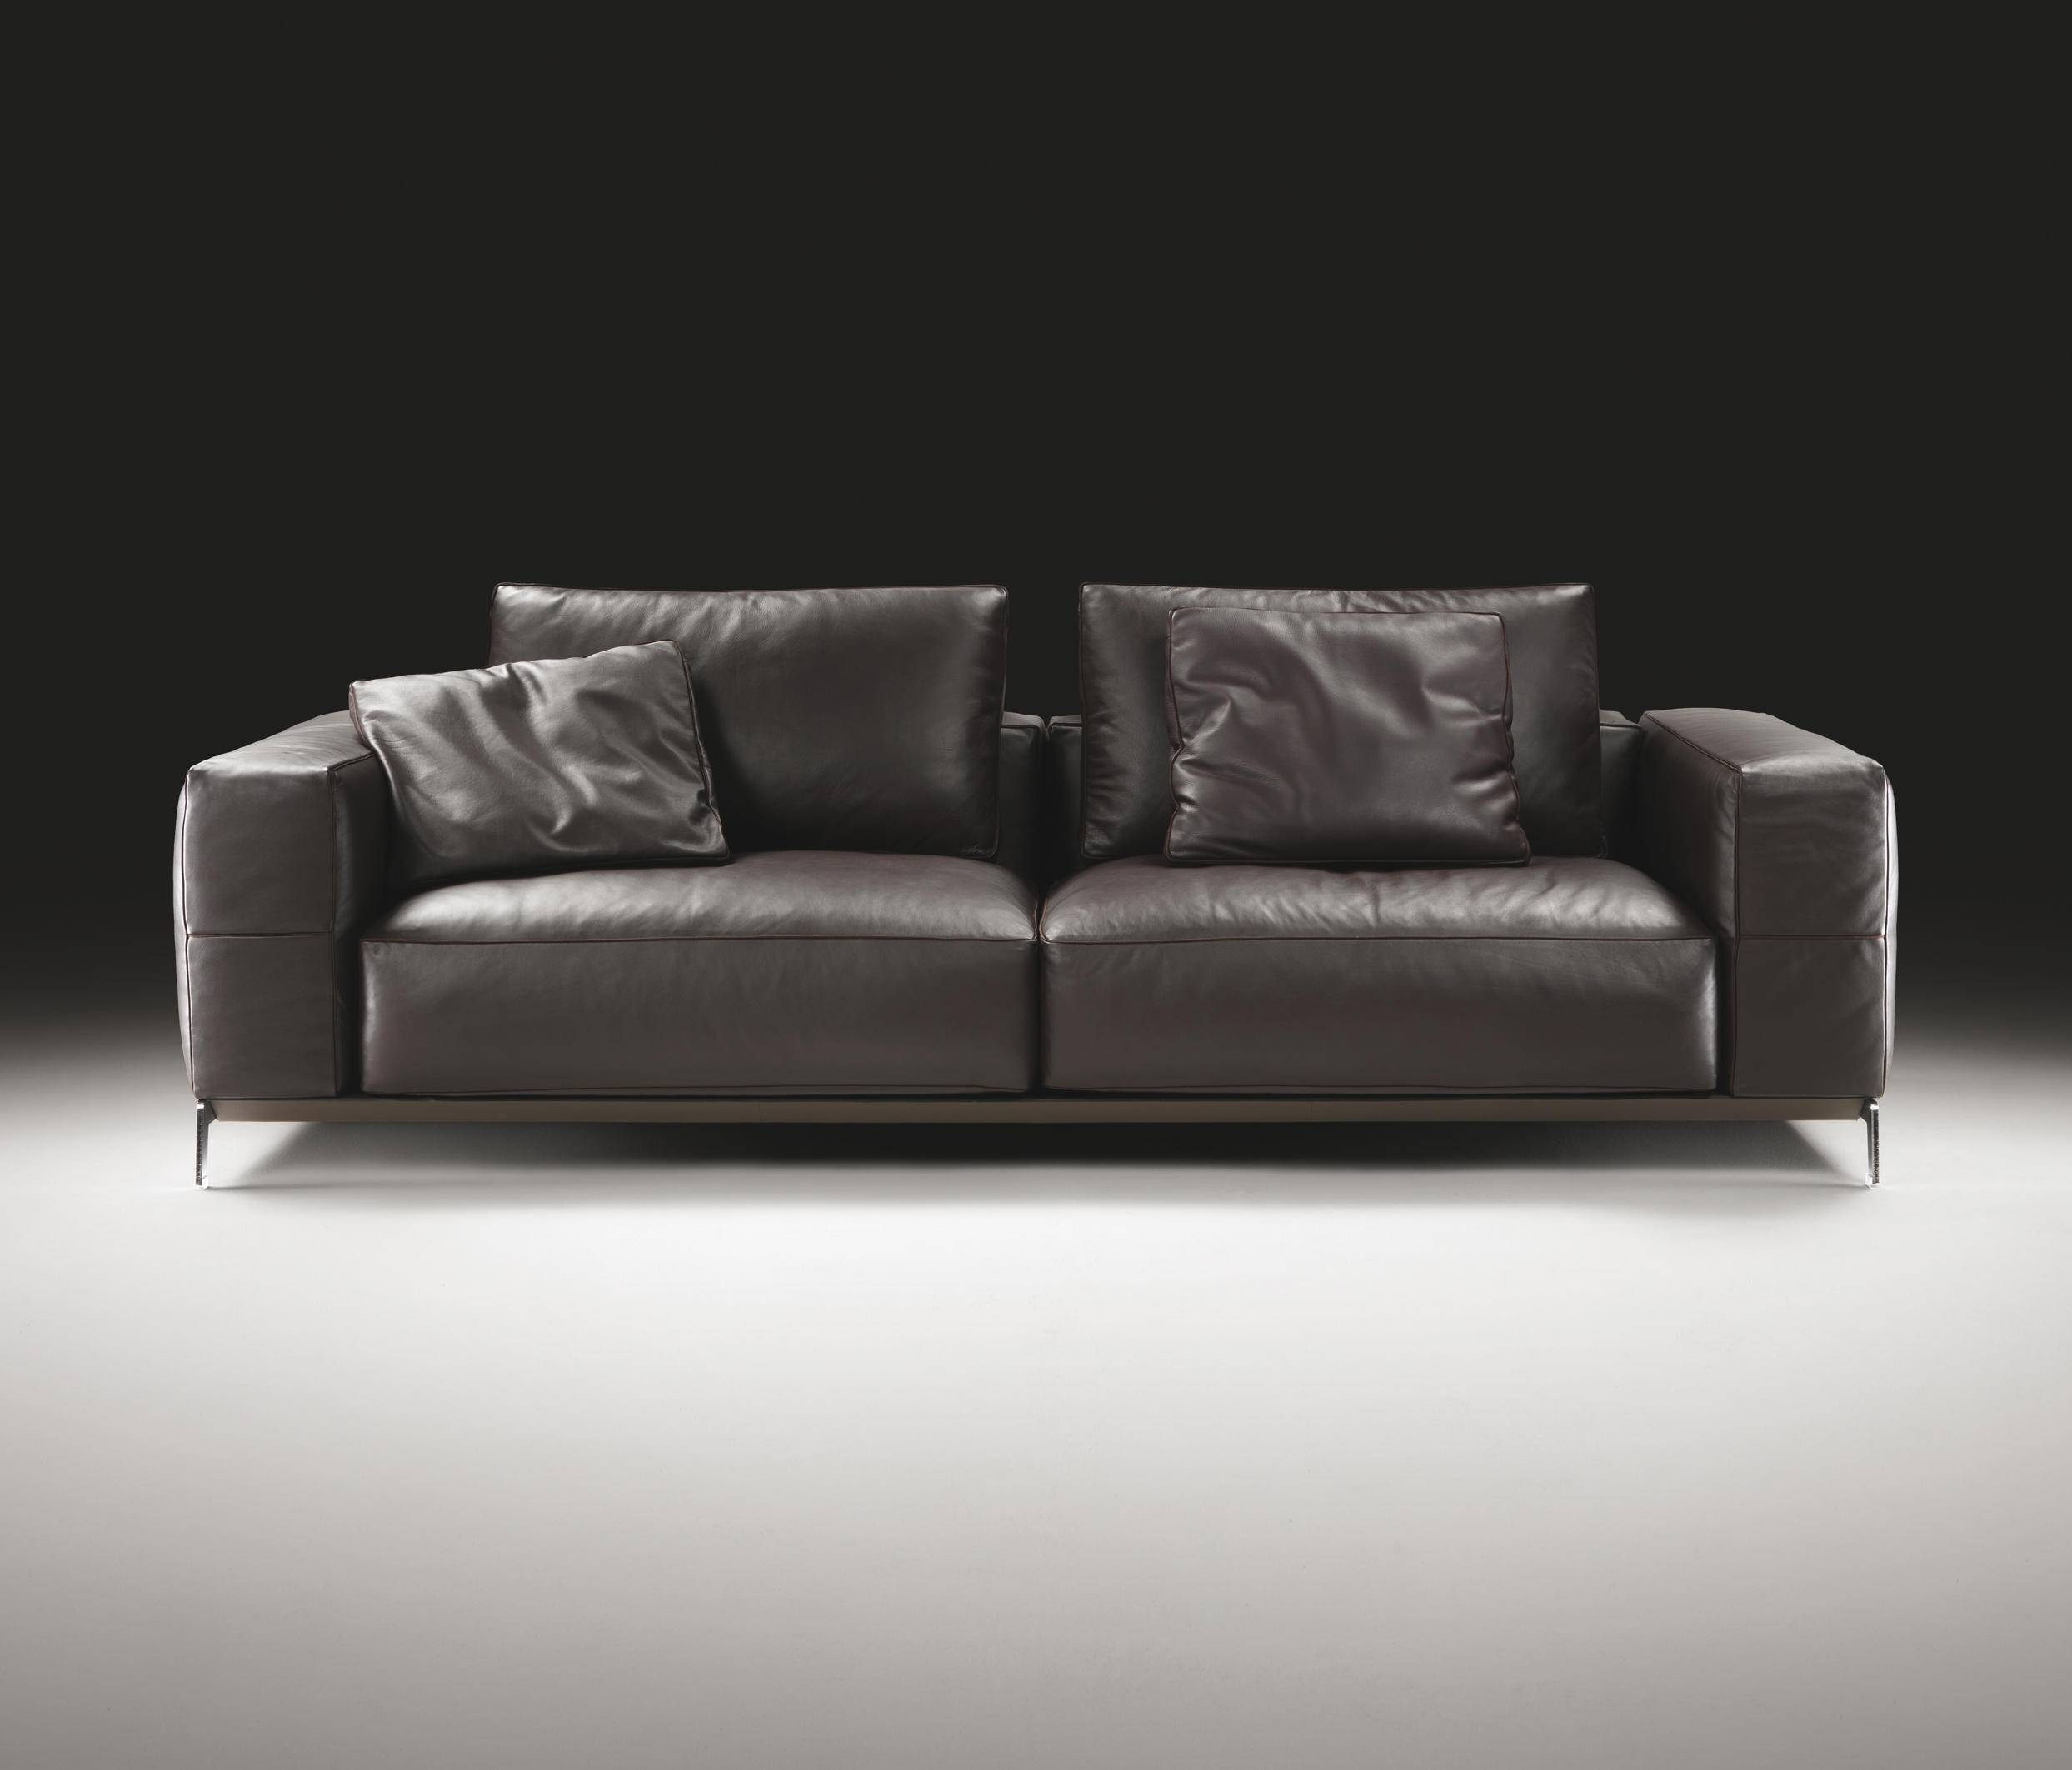 Ettore - Lounge Sofas From Flexform | Architonic with regard to Flexform Sofas (Image 4 of 25)